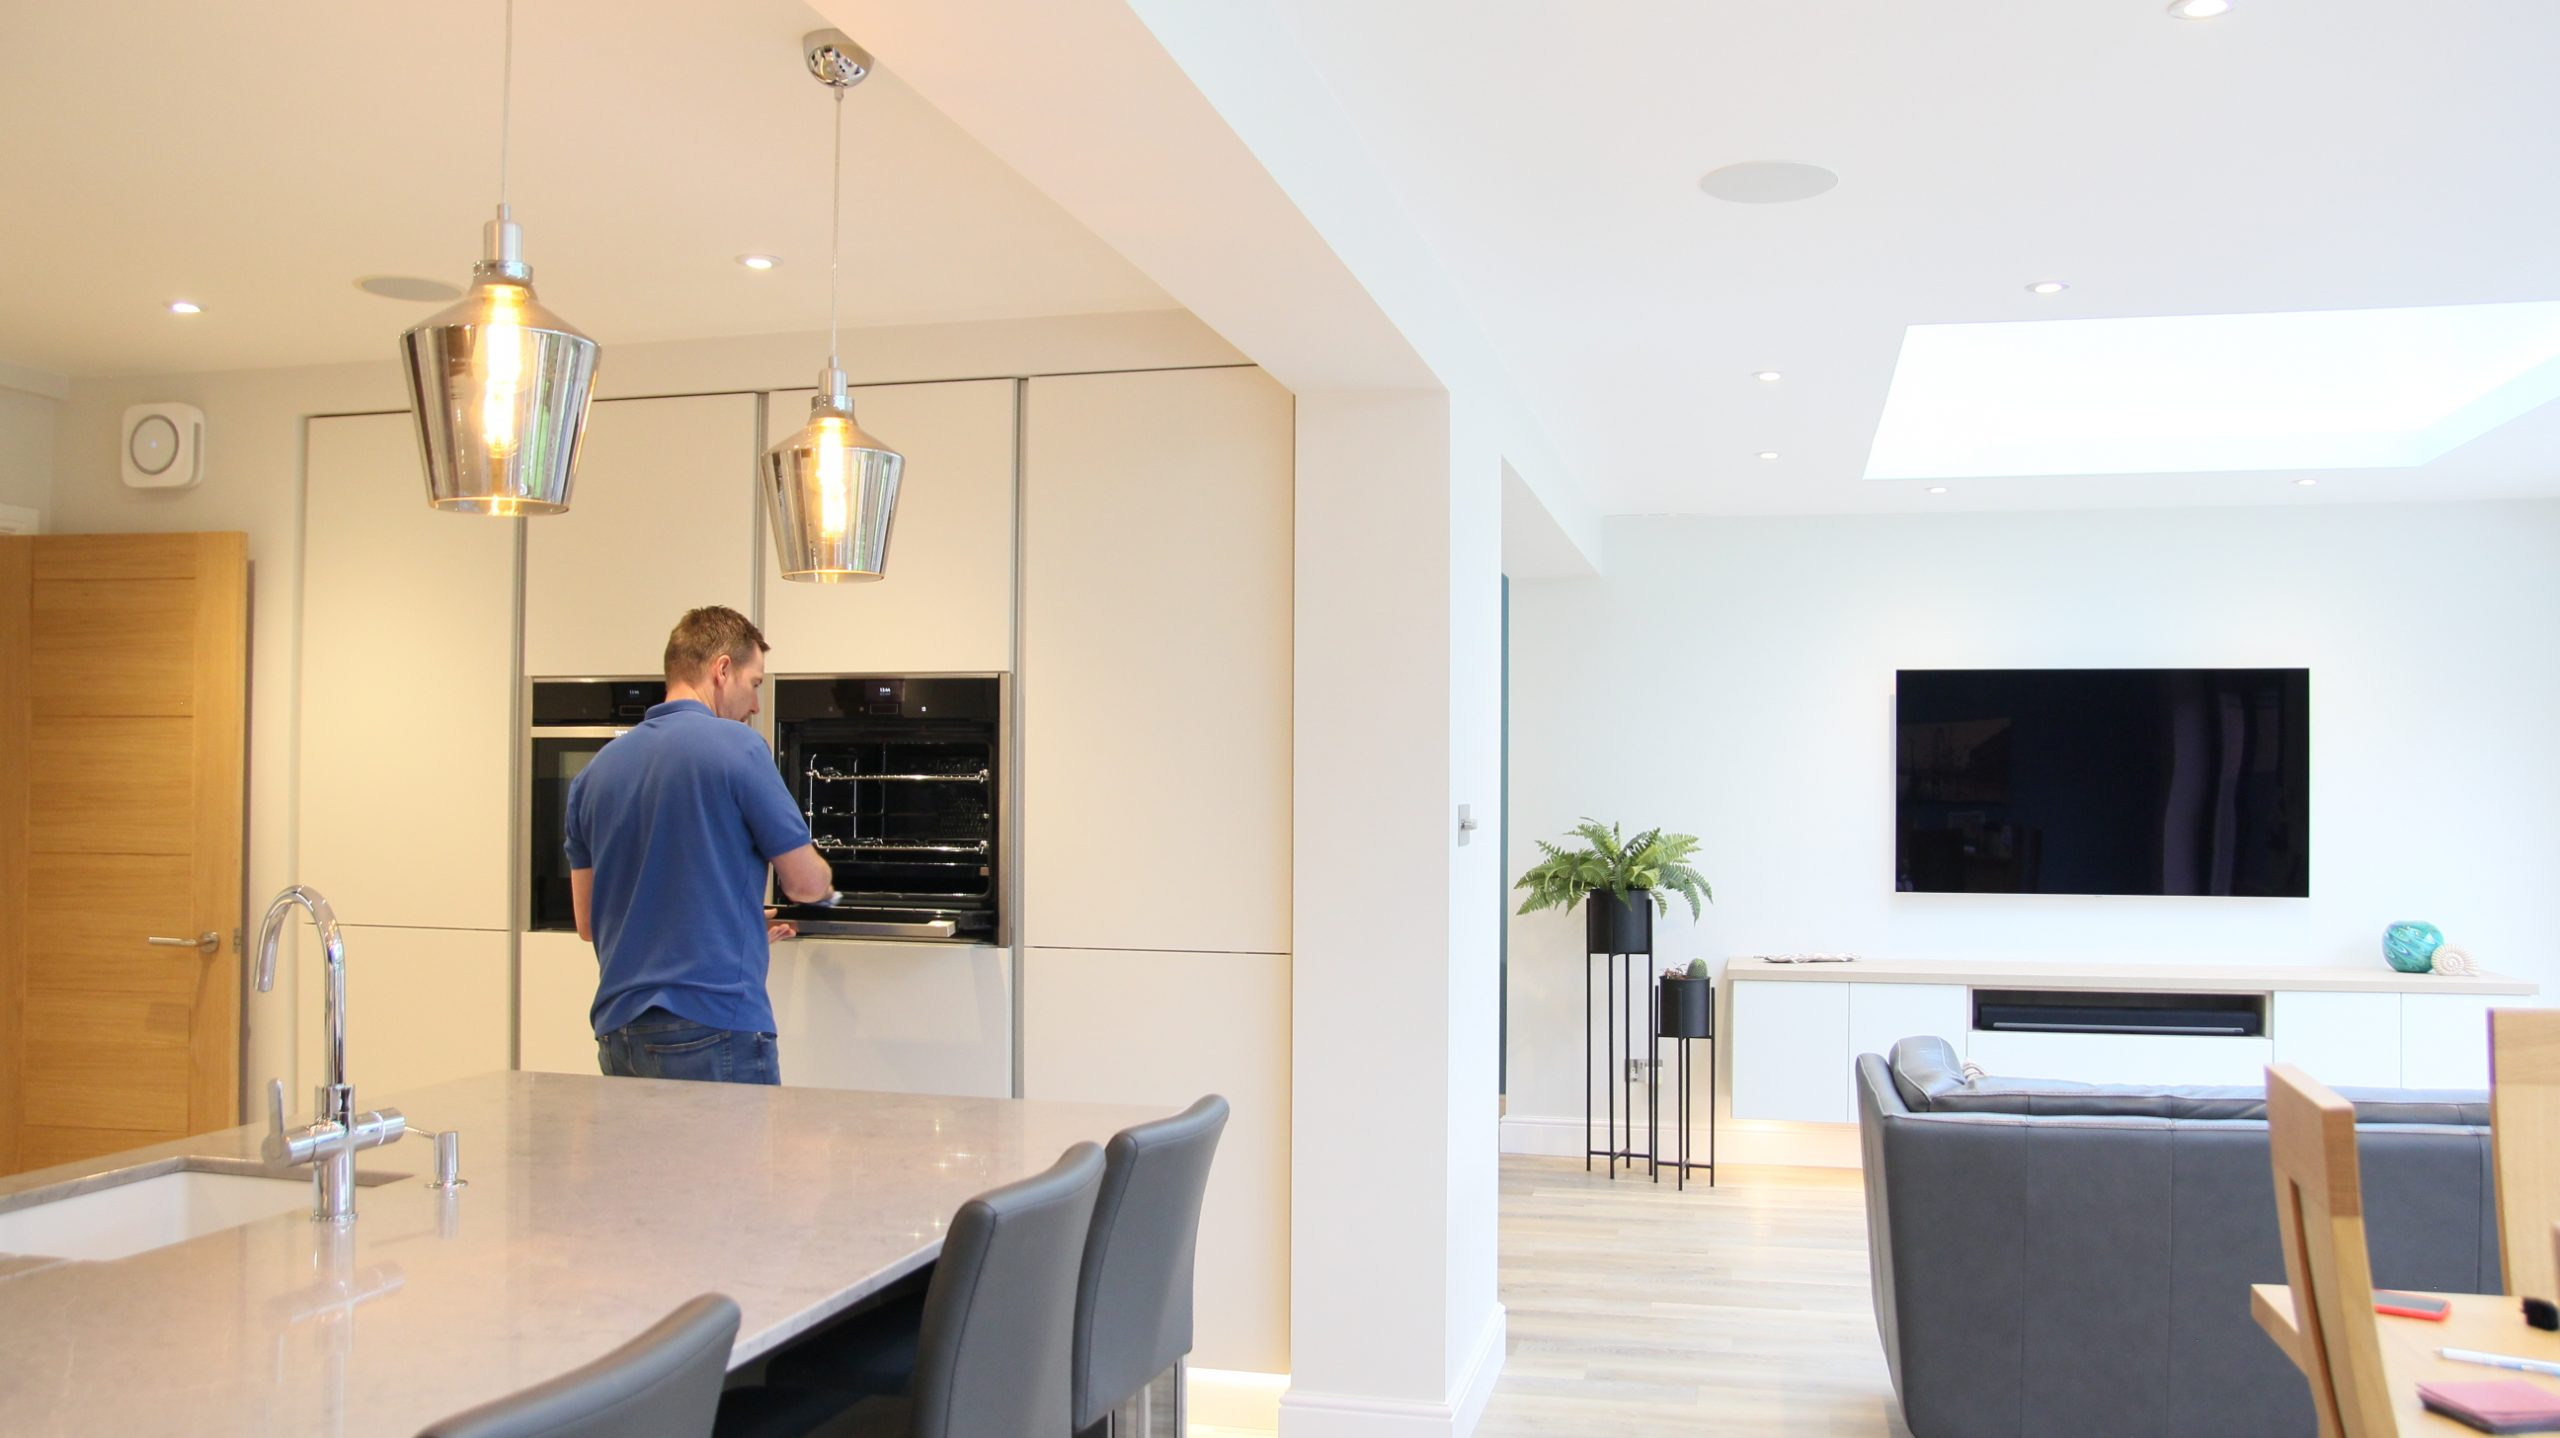 Kalibre Kitchens and bathrooms virtual appointments Fleet